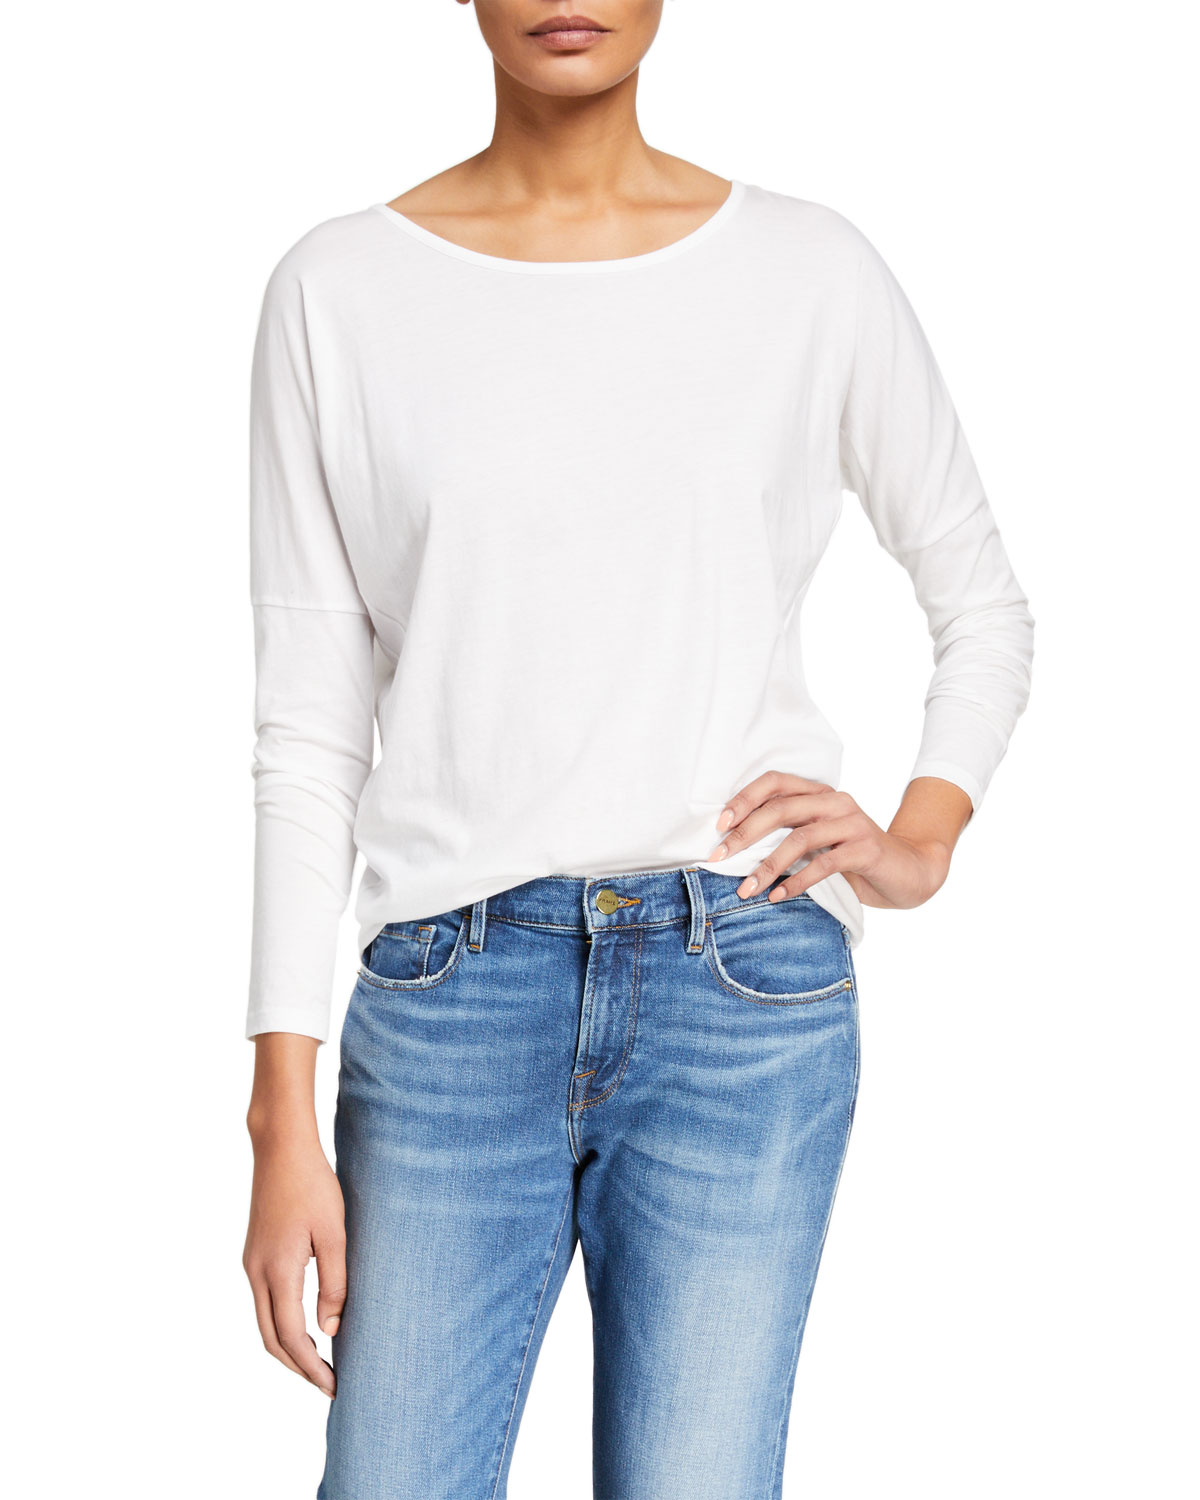 Frame Tops LE MID RISE GARCON LONG-SLEEVE TOP